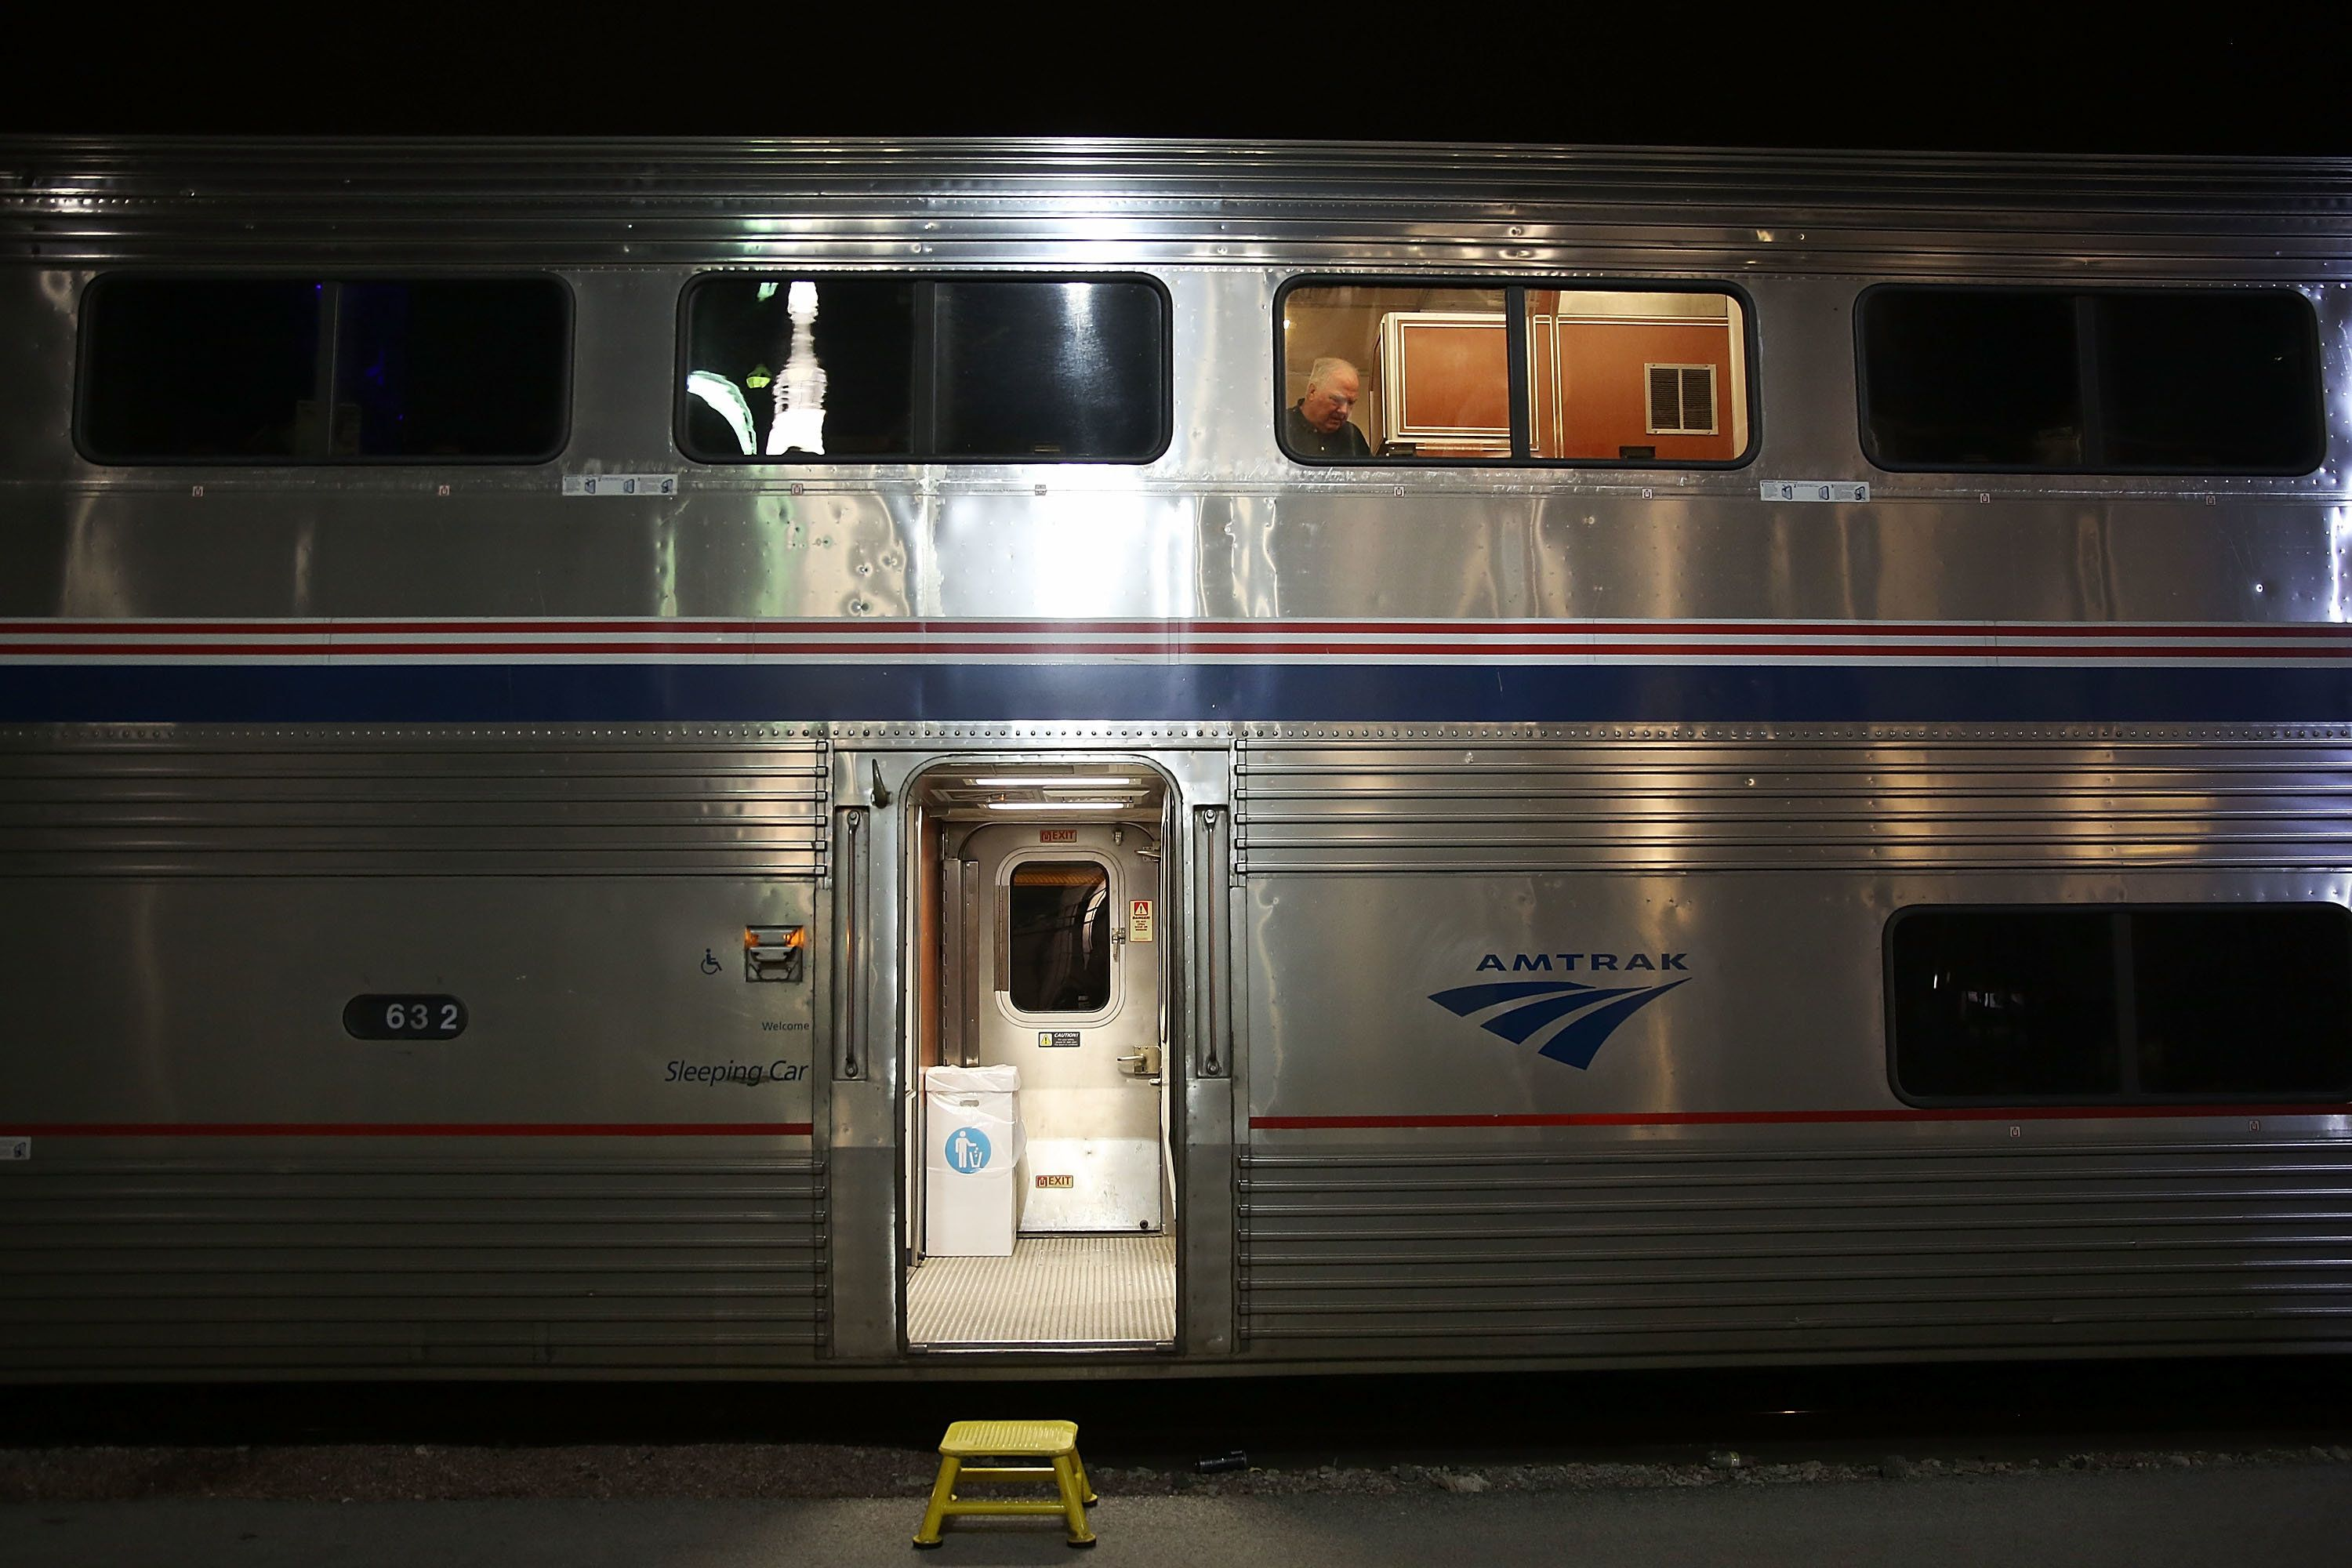 The FBI is accusing Taylor Michael Wilson, 26, of attempting to derail an Amtrak train as an act of terrorism.